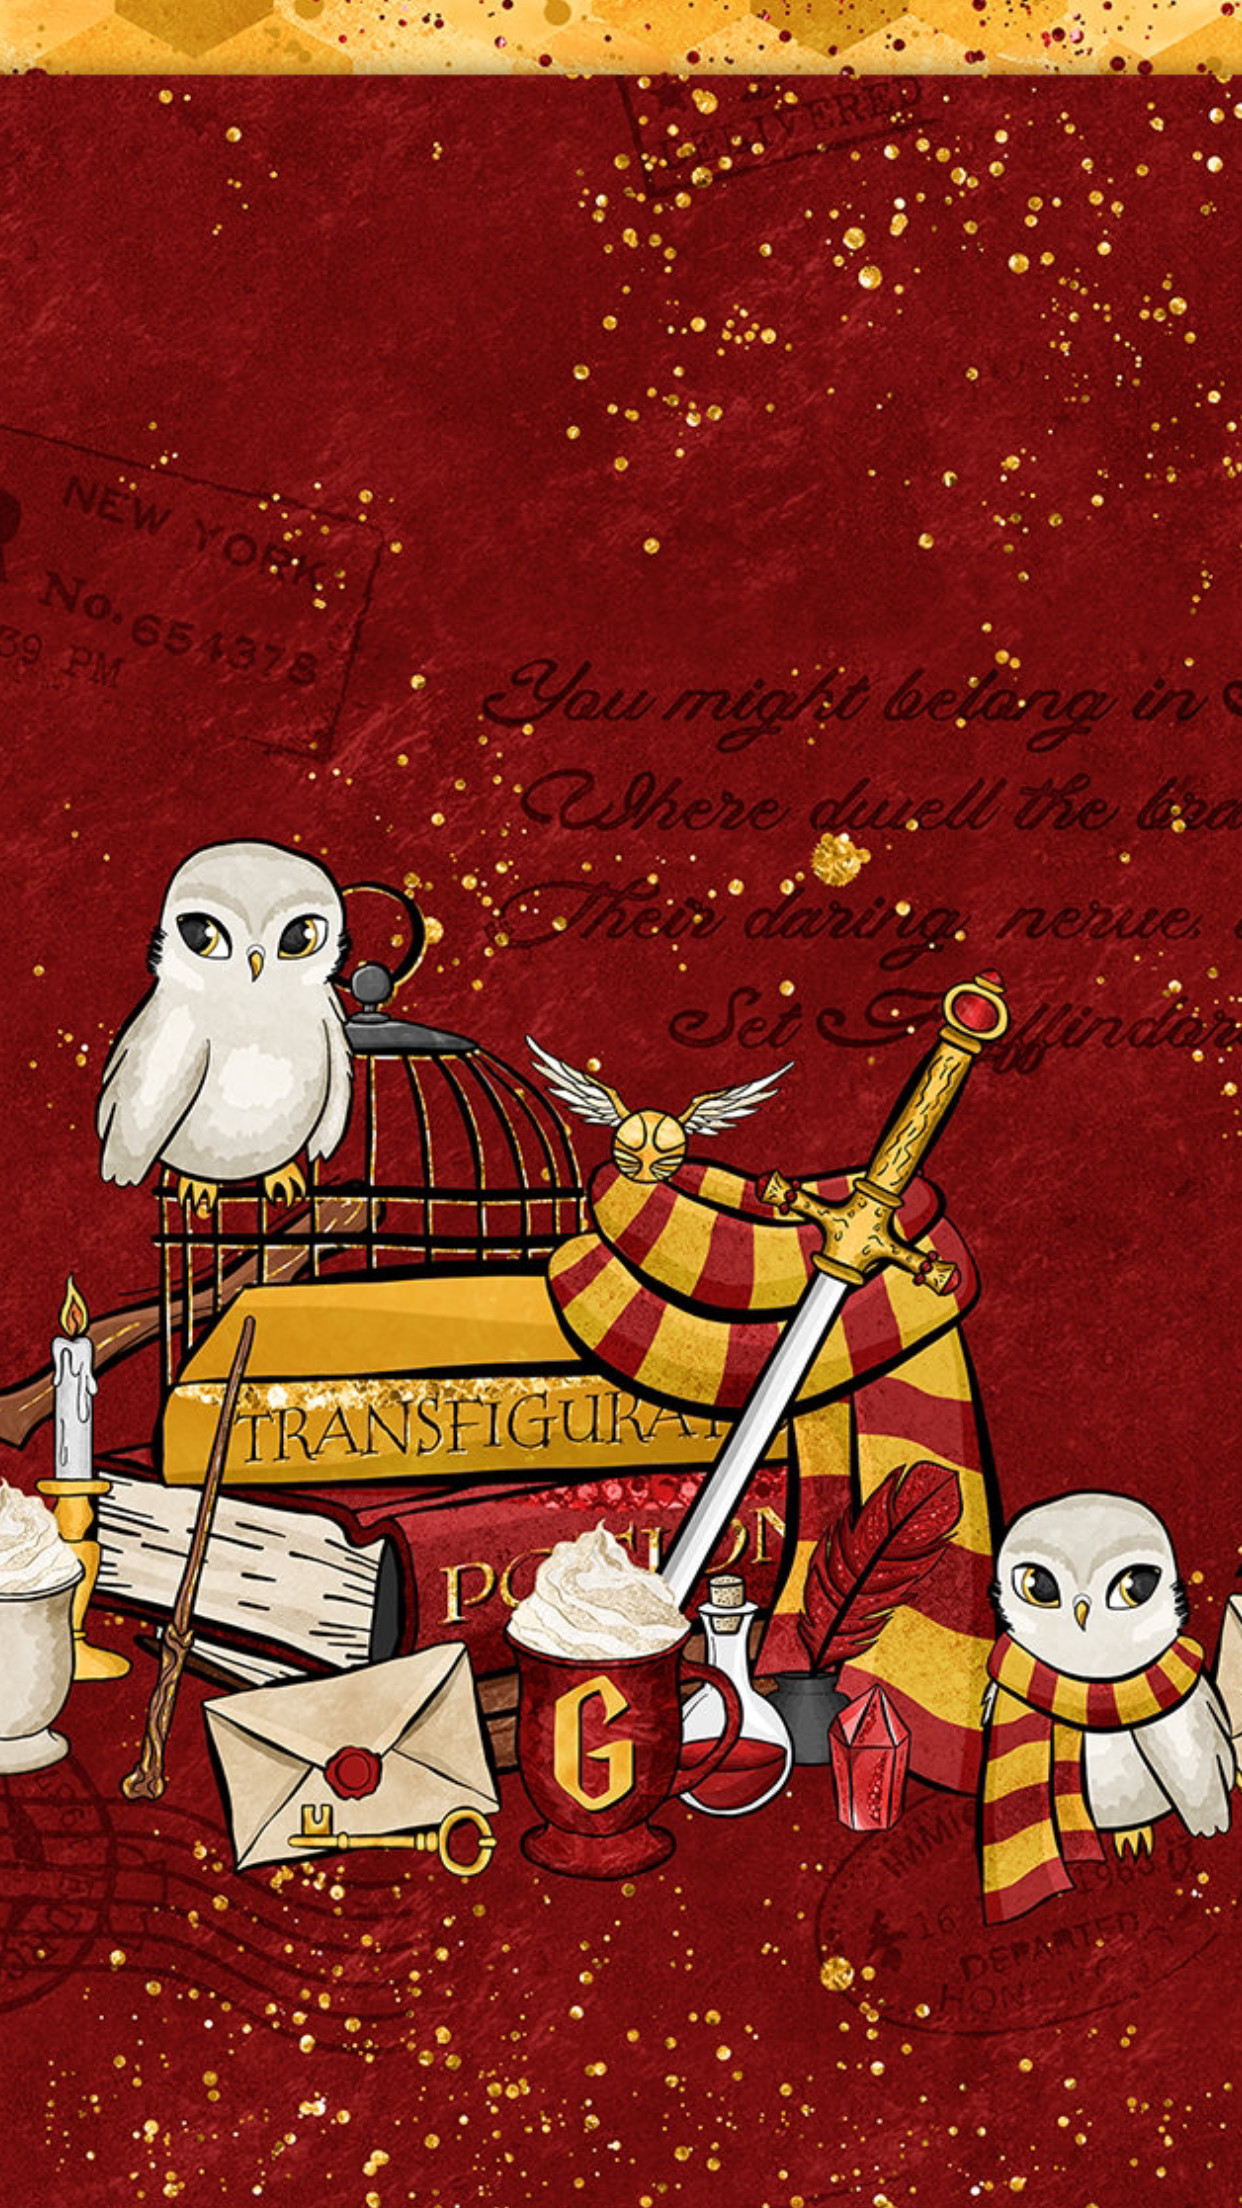 Res: 1242x2208, Pin by Taylor Head on Gryffindor!! | Pinterest | Harry potter, Wallpaper  and Hogwarts